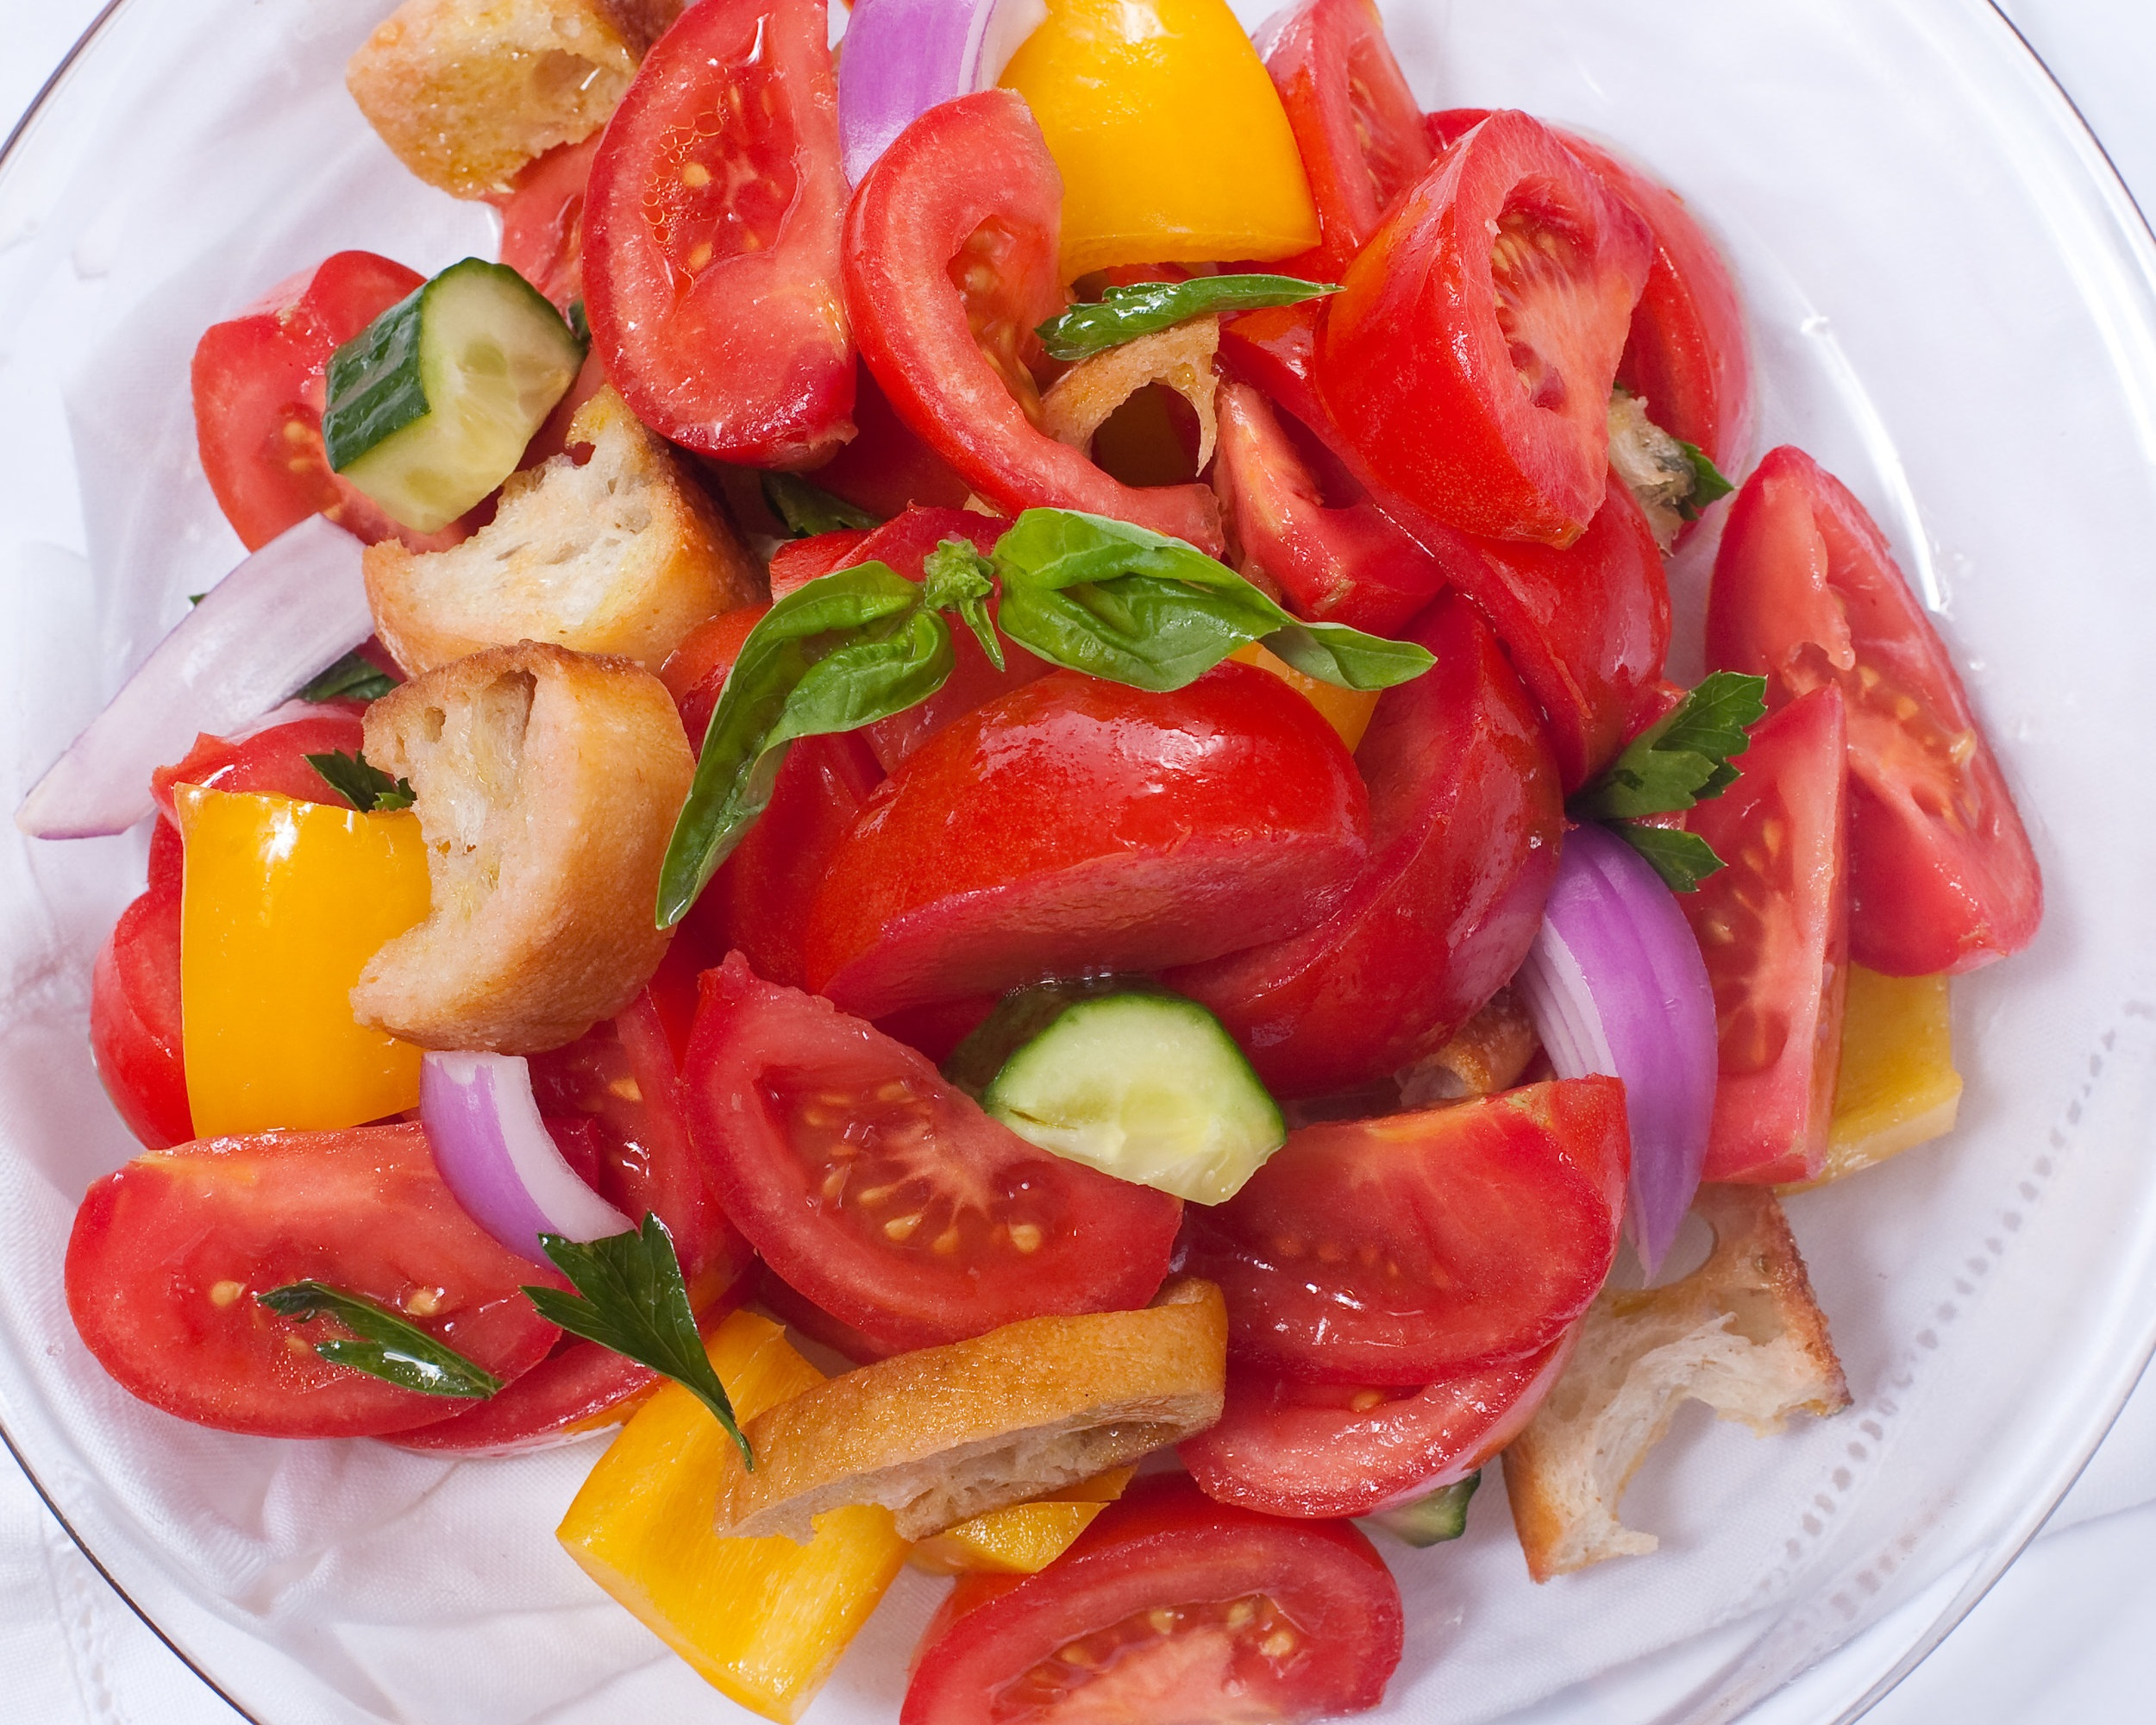 Bread salad with Roma tomatoes, yellow peppers and red onions.jpg